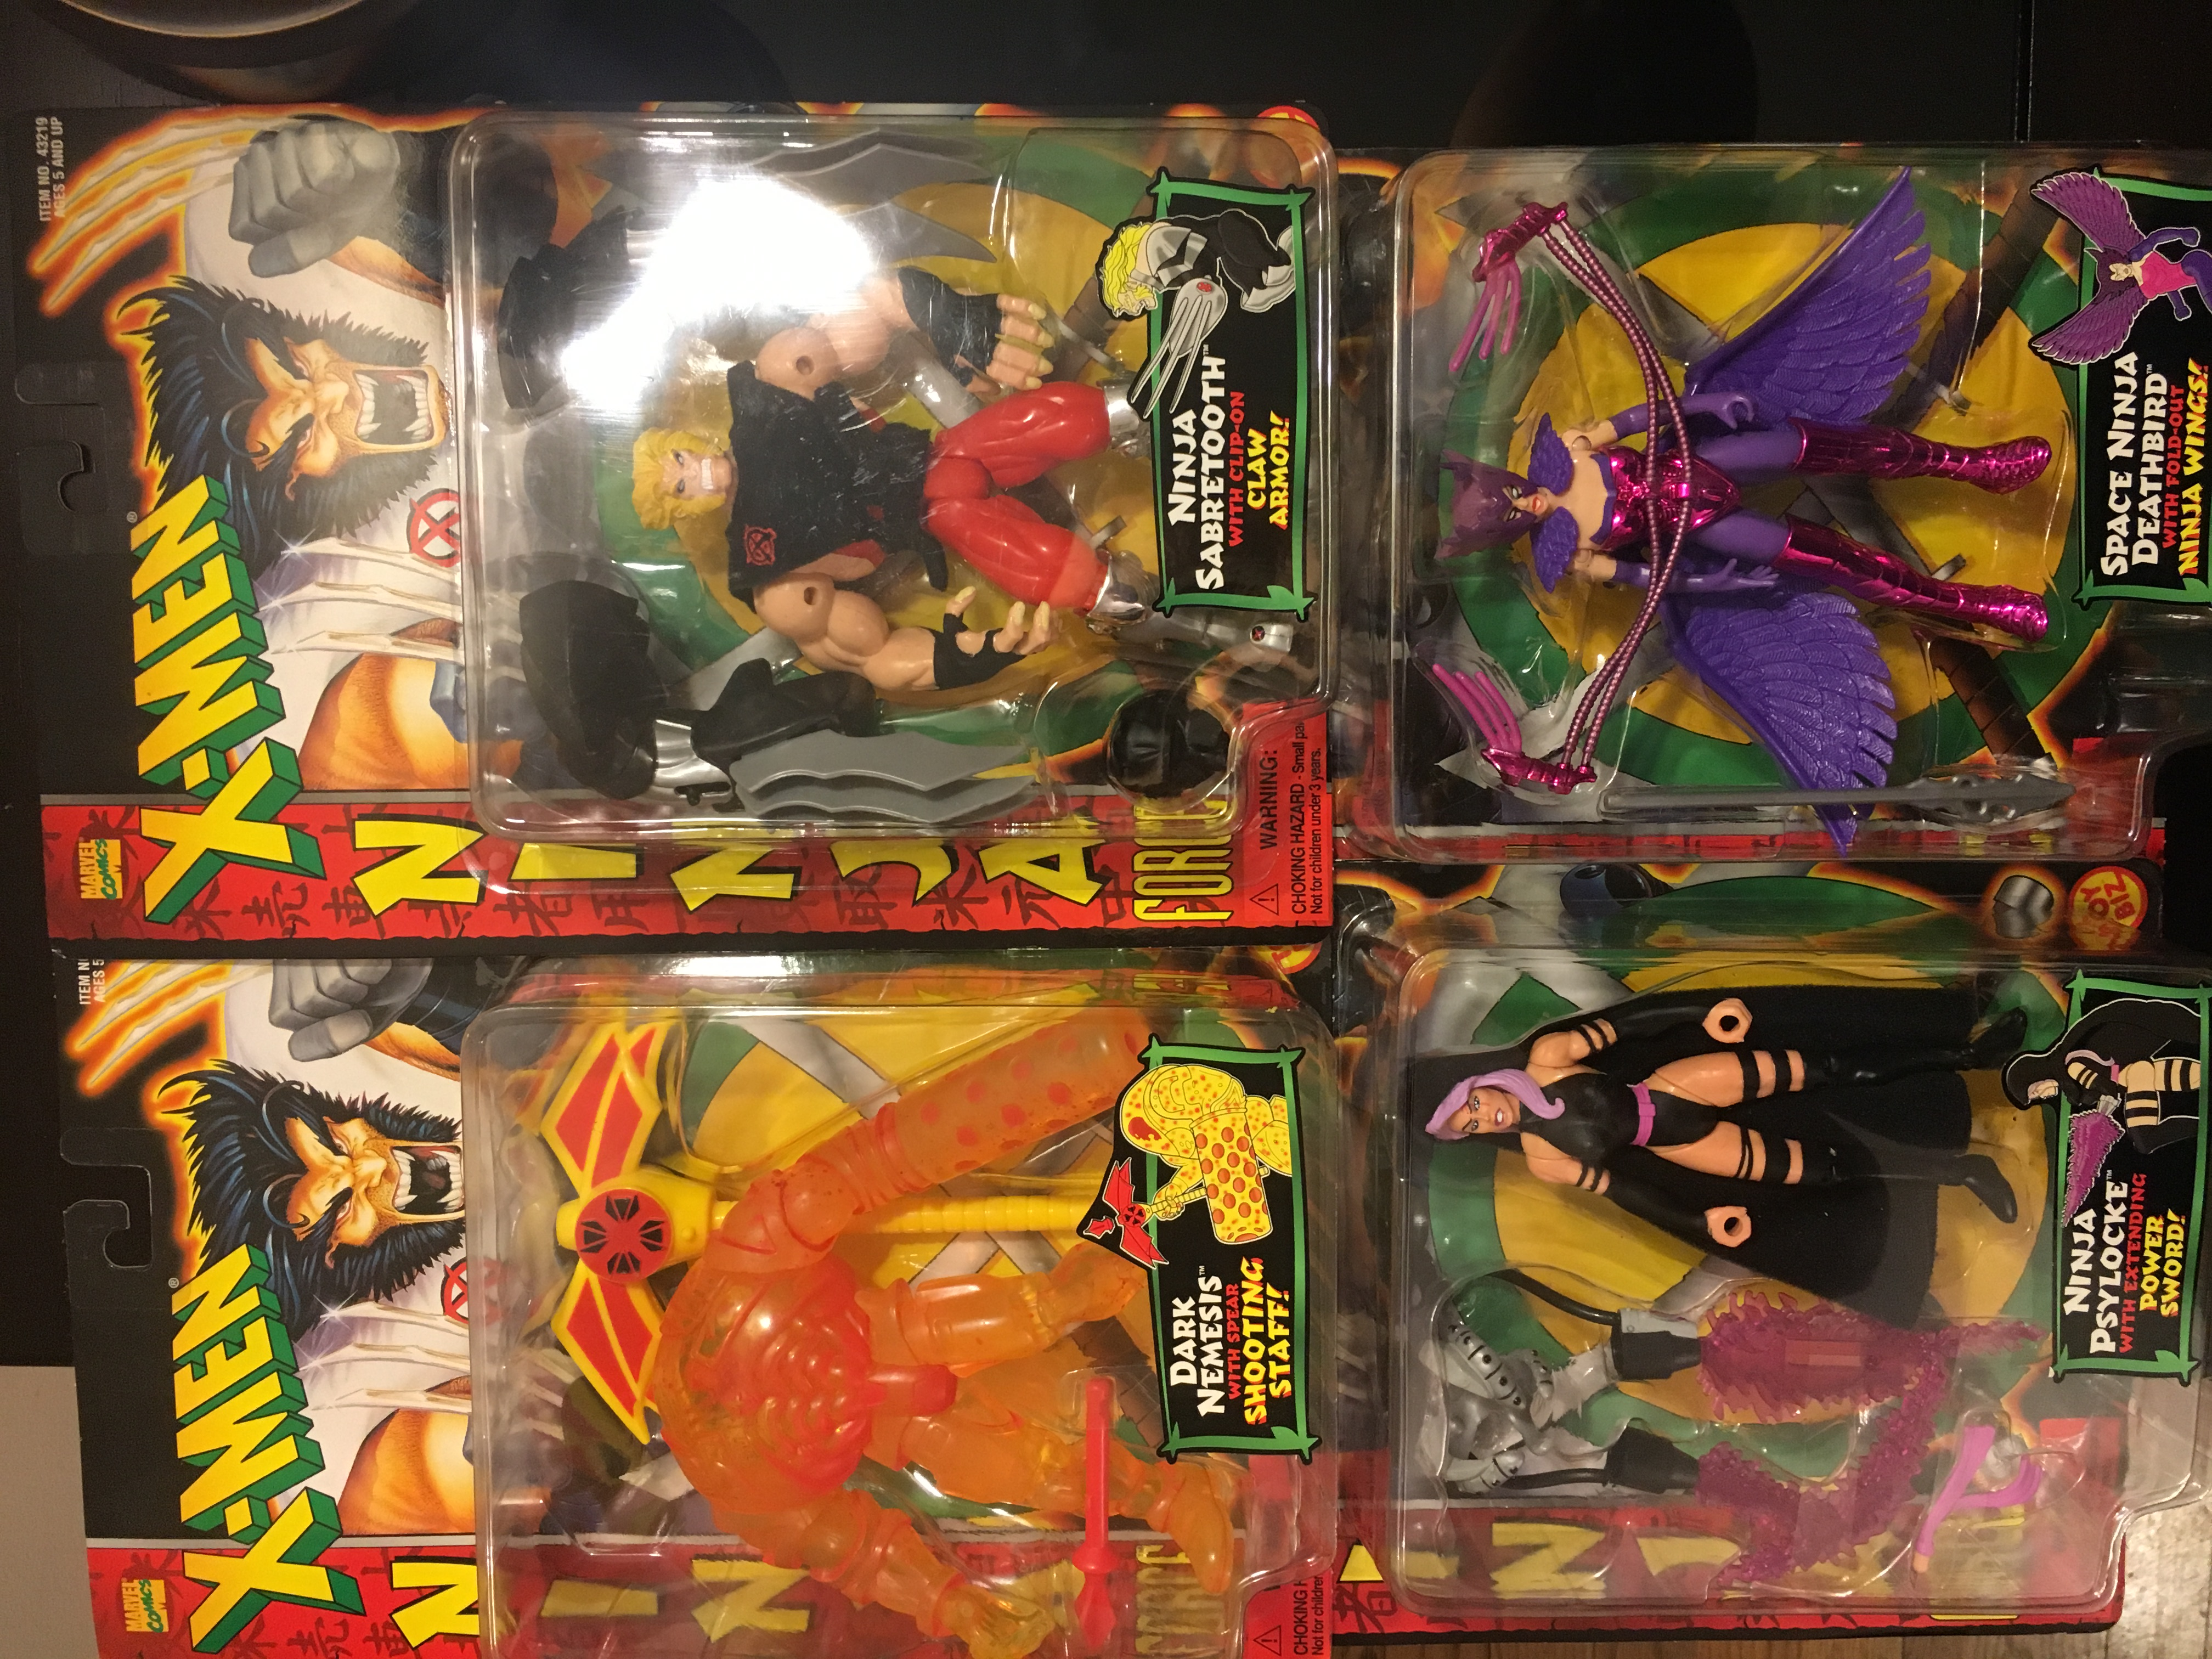 X-Men Ninja Force Lot (4 out of 5 collectables)  Toy Biz, Inc. 035112432203; 035112432197; 035112432180; 03511243